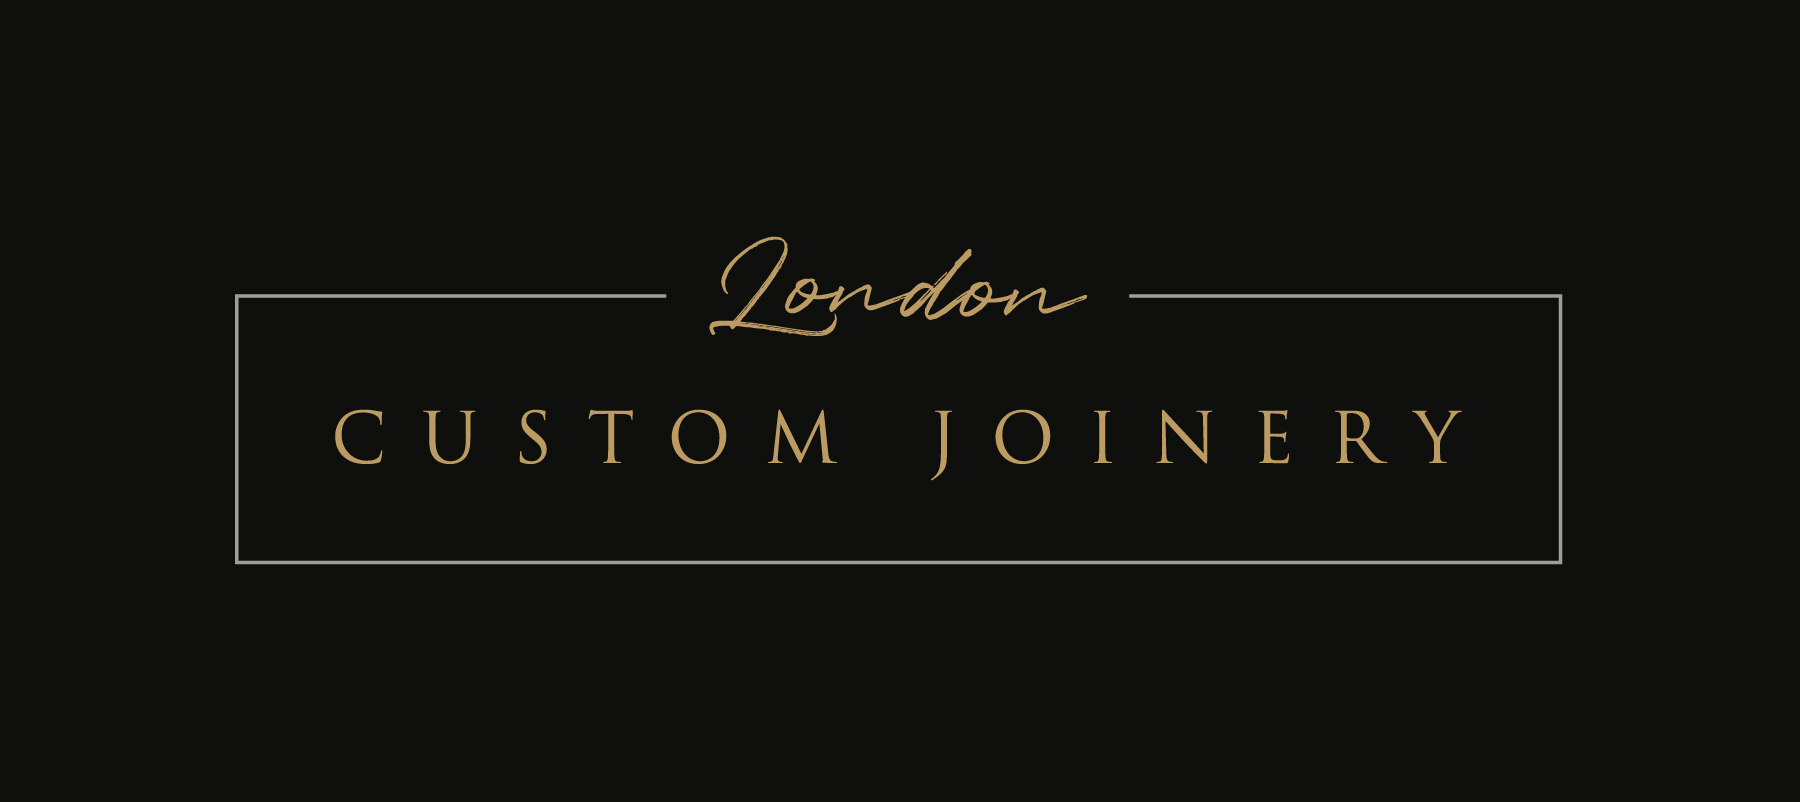 LONDON CUSTOM JOINERY